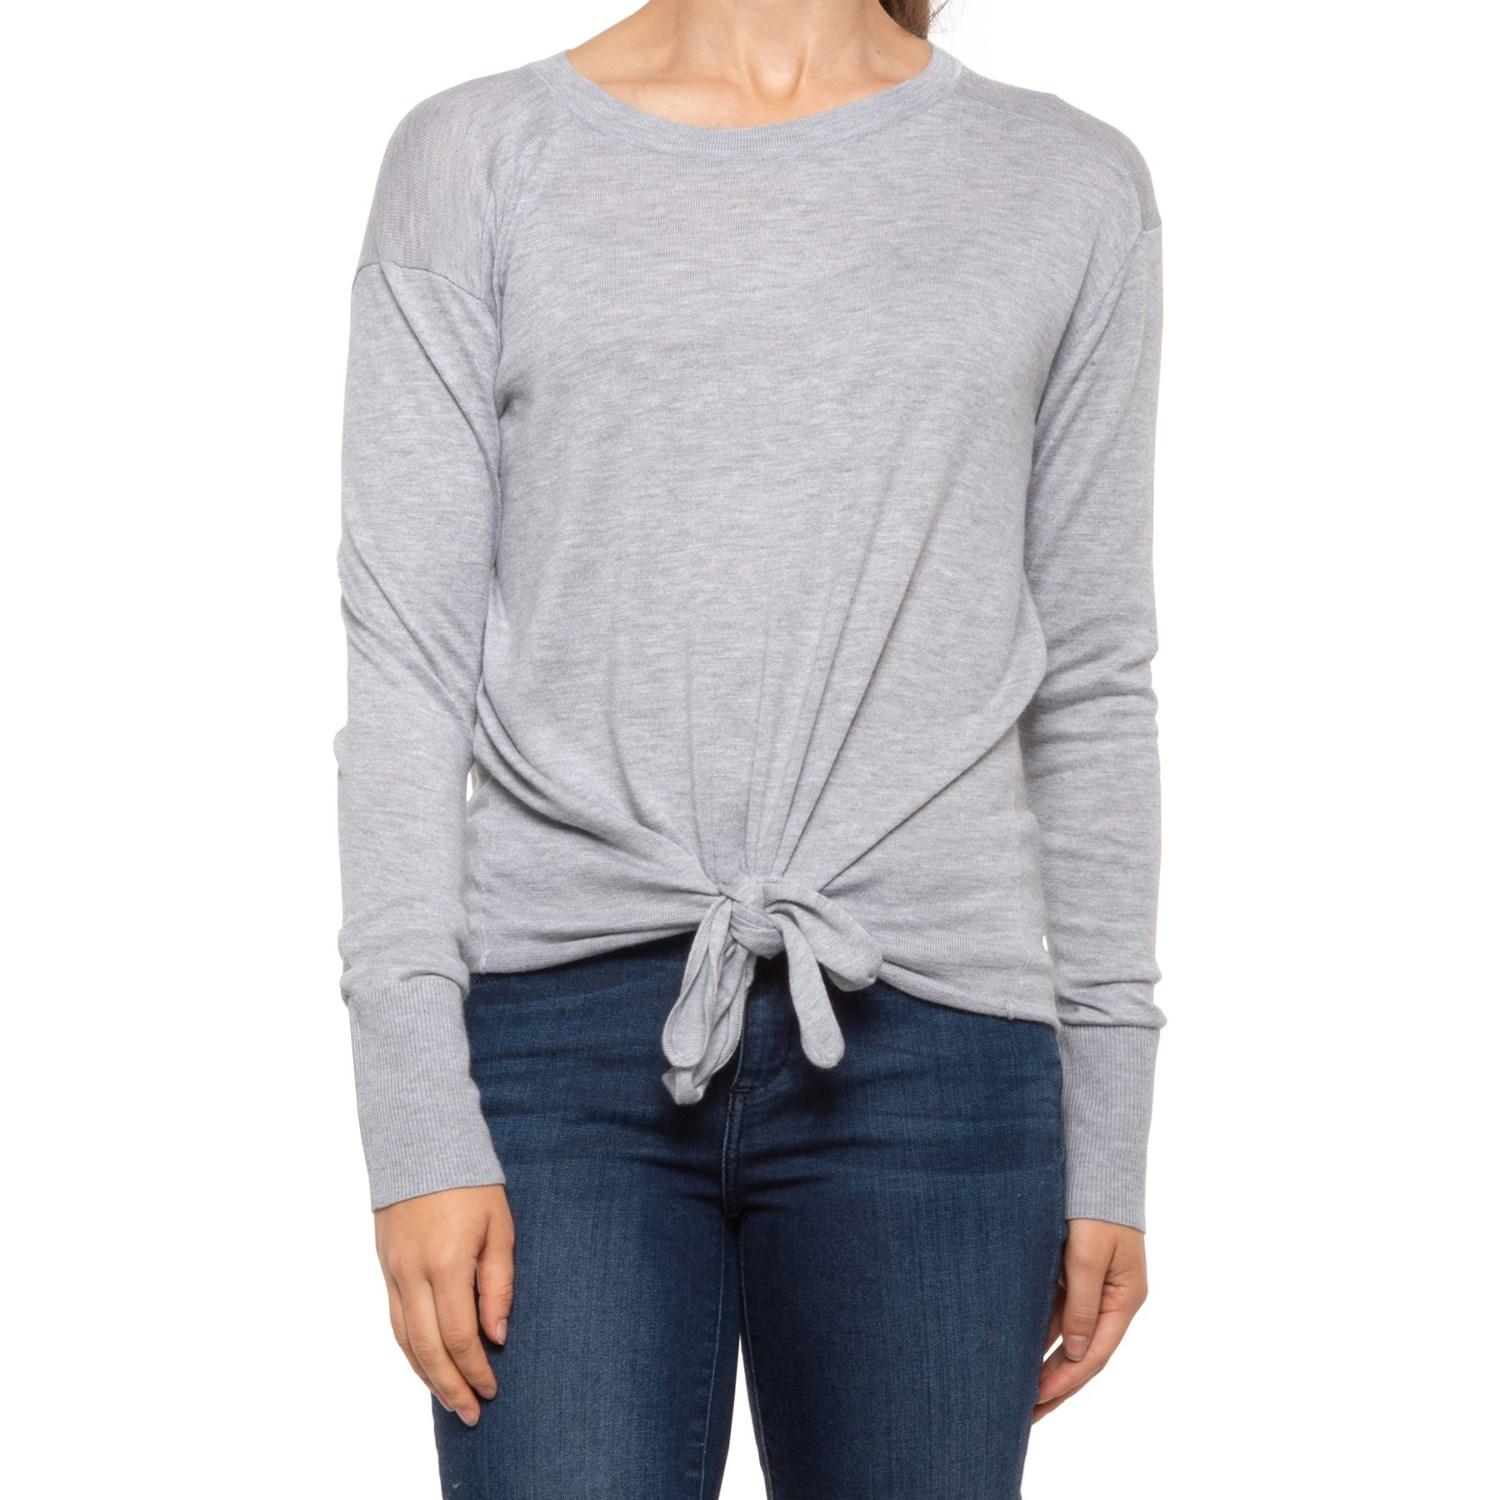 INDUSTRY ACTIVE Tie Front Knit Sweater (For Women) Save 32%